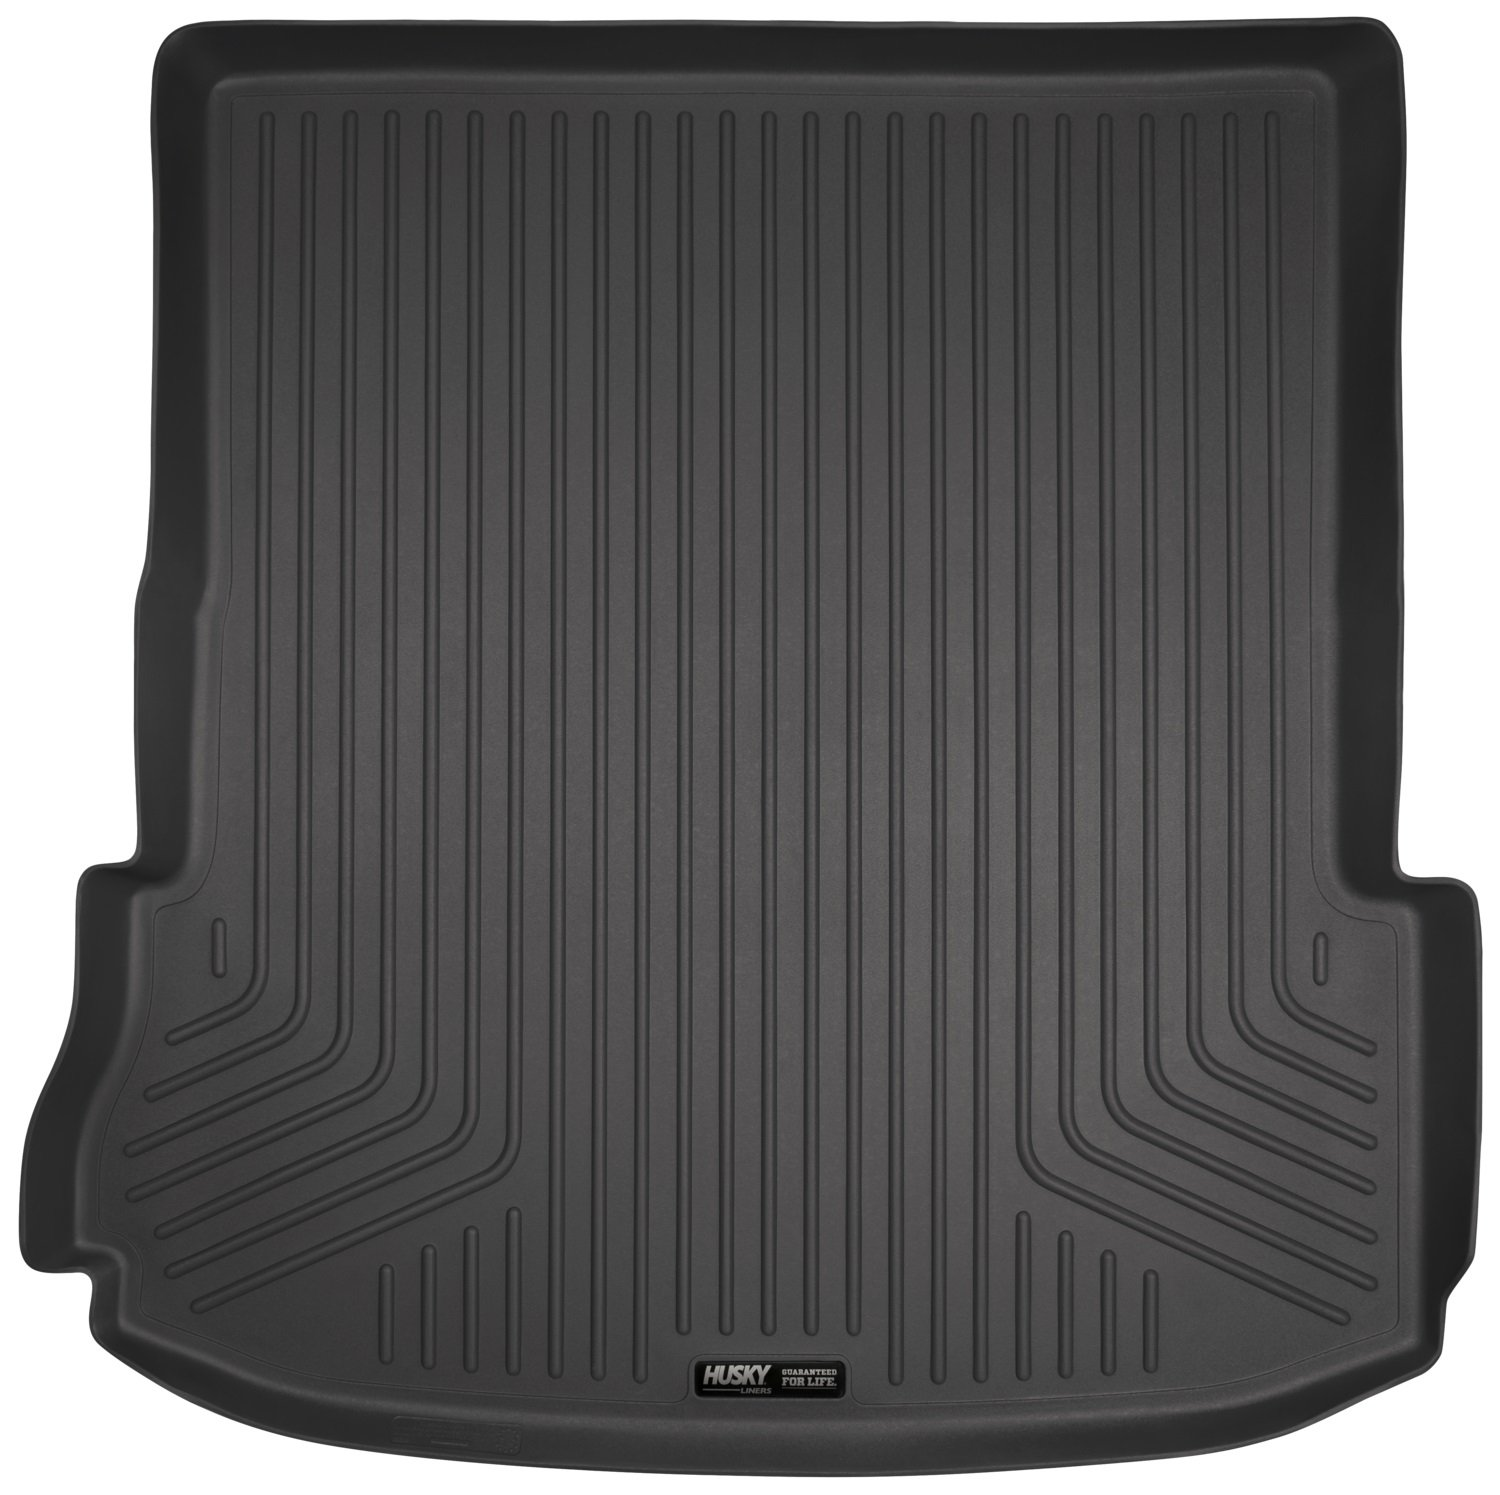 Husky Liners Cargo Liner Fits 11-18 Explorer Winfield Consumer Products 23781